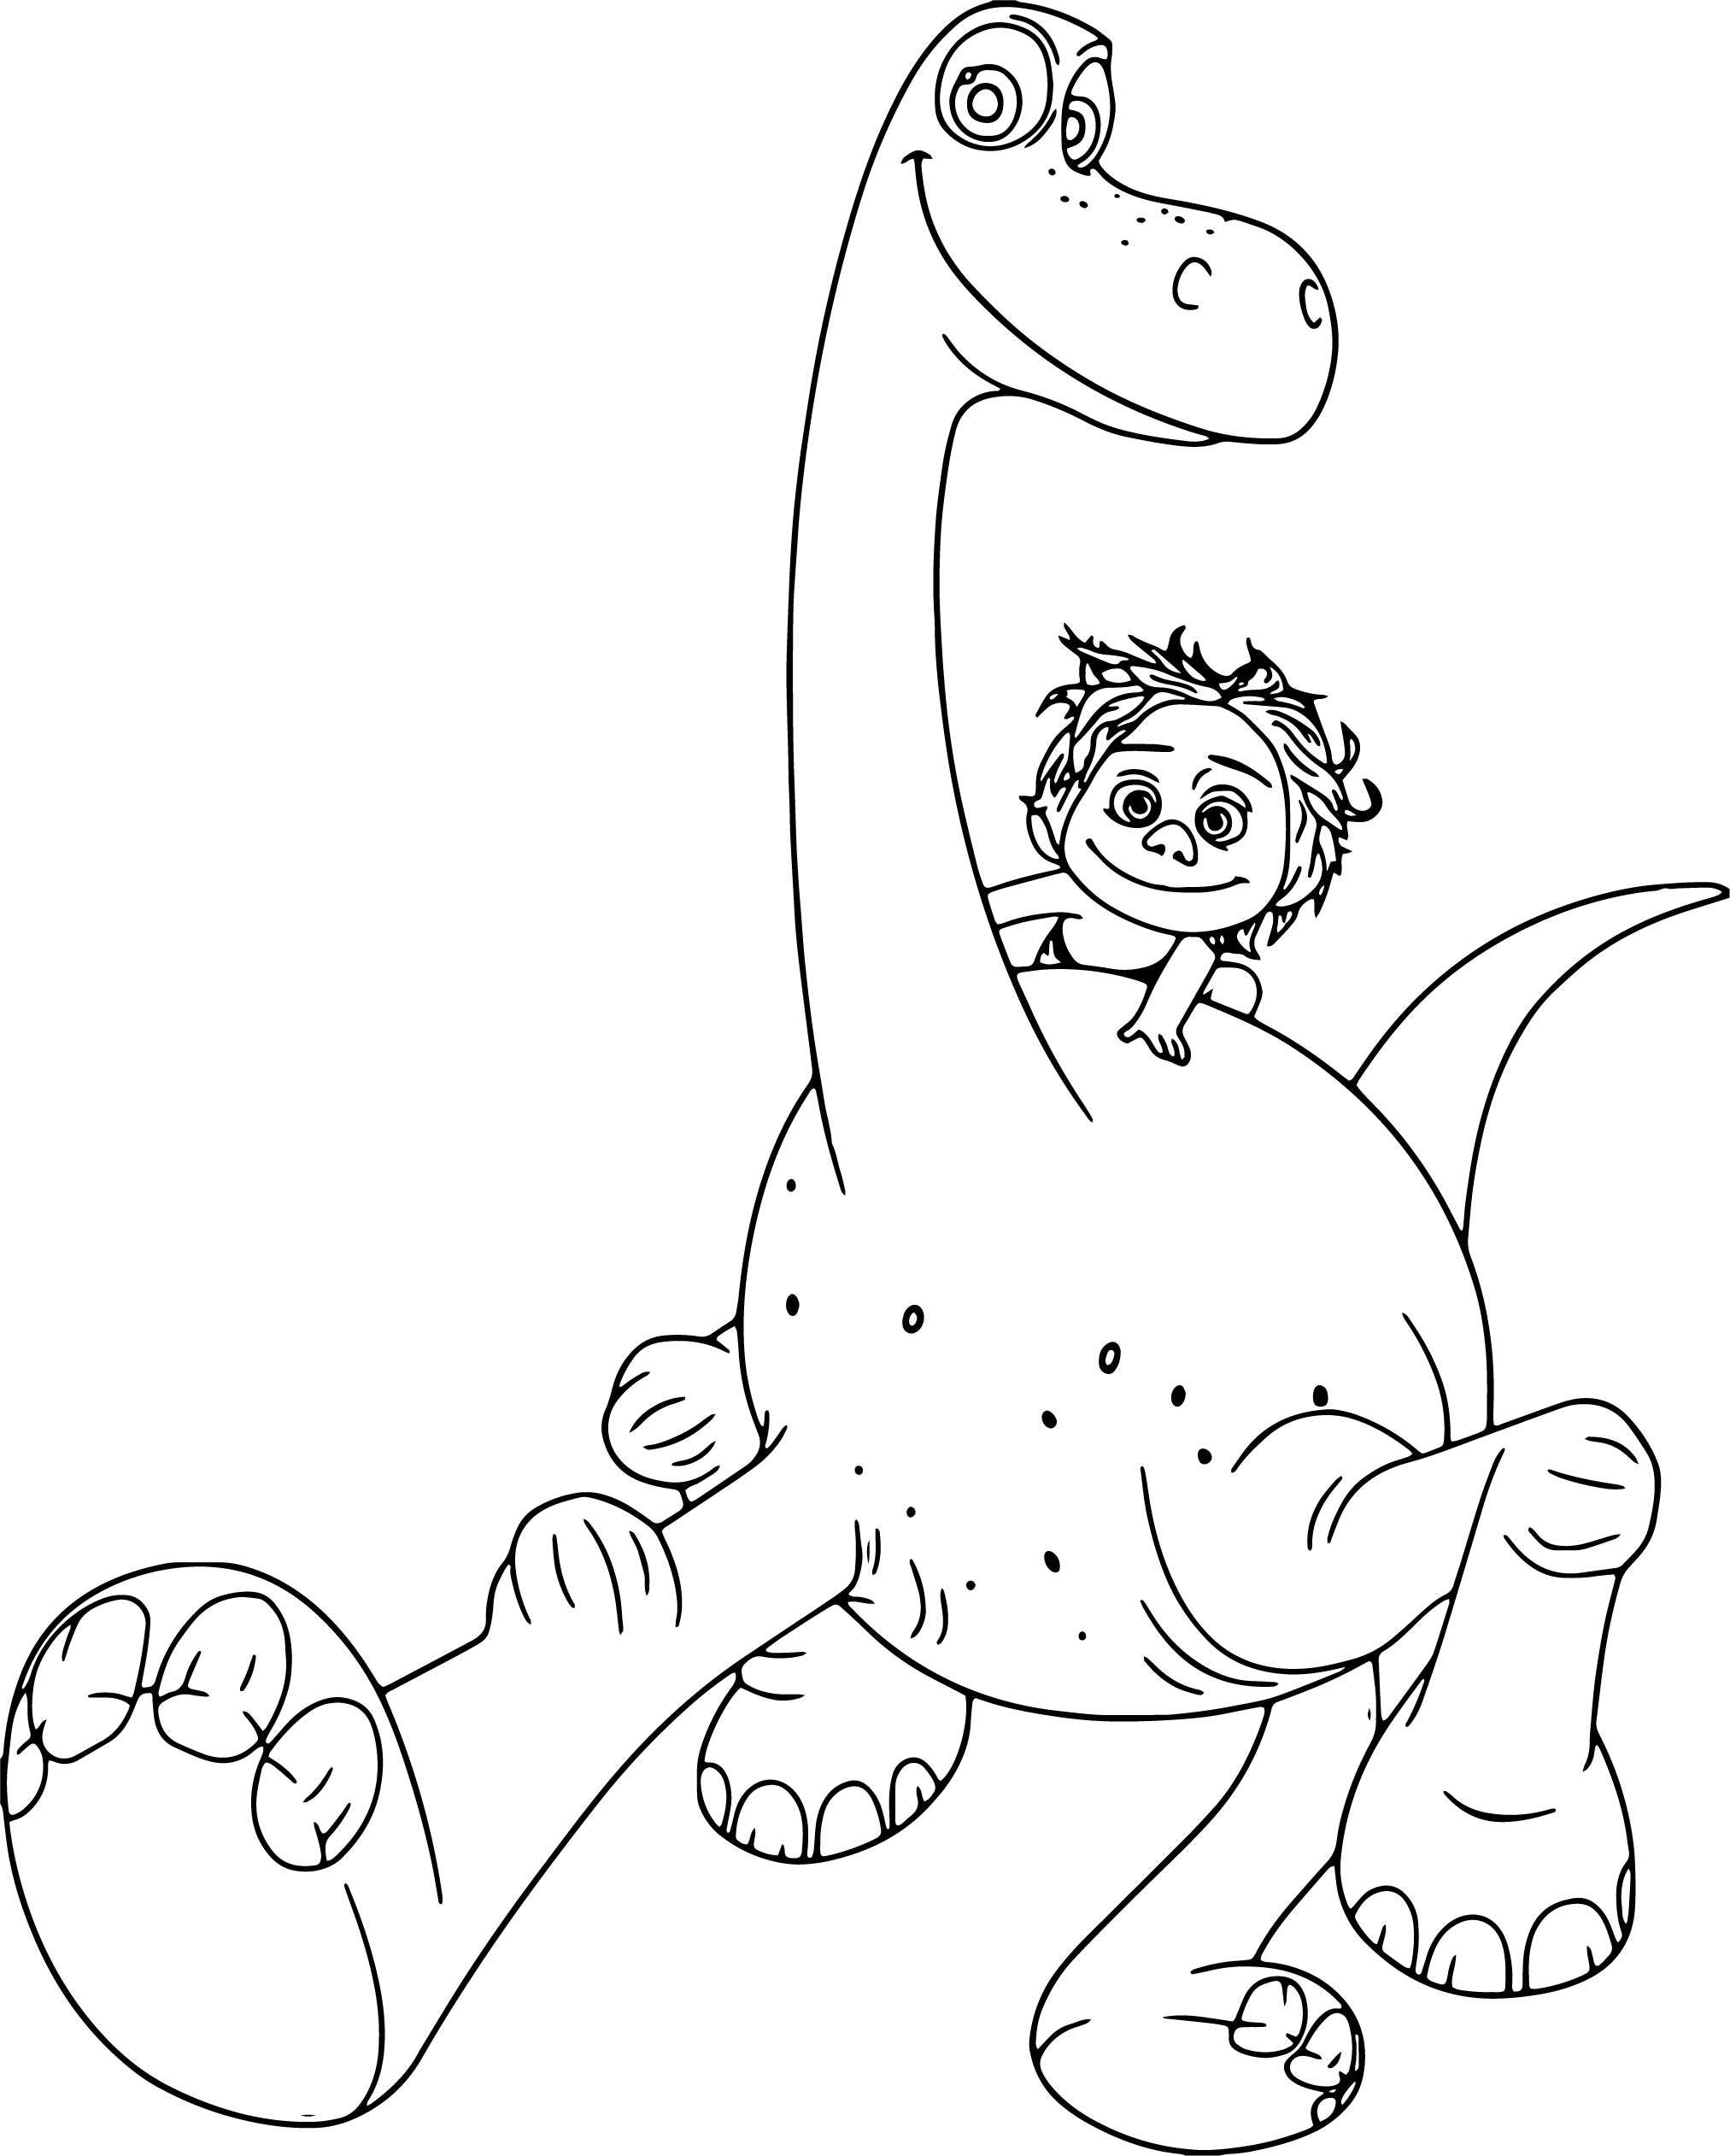 dinosaurs color pages - the good dinosaur disney arlo spot with cartoon coloring